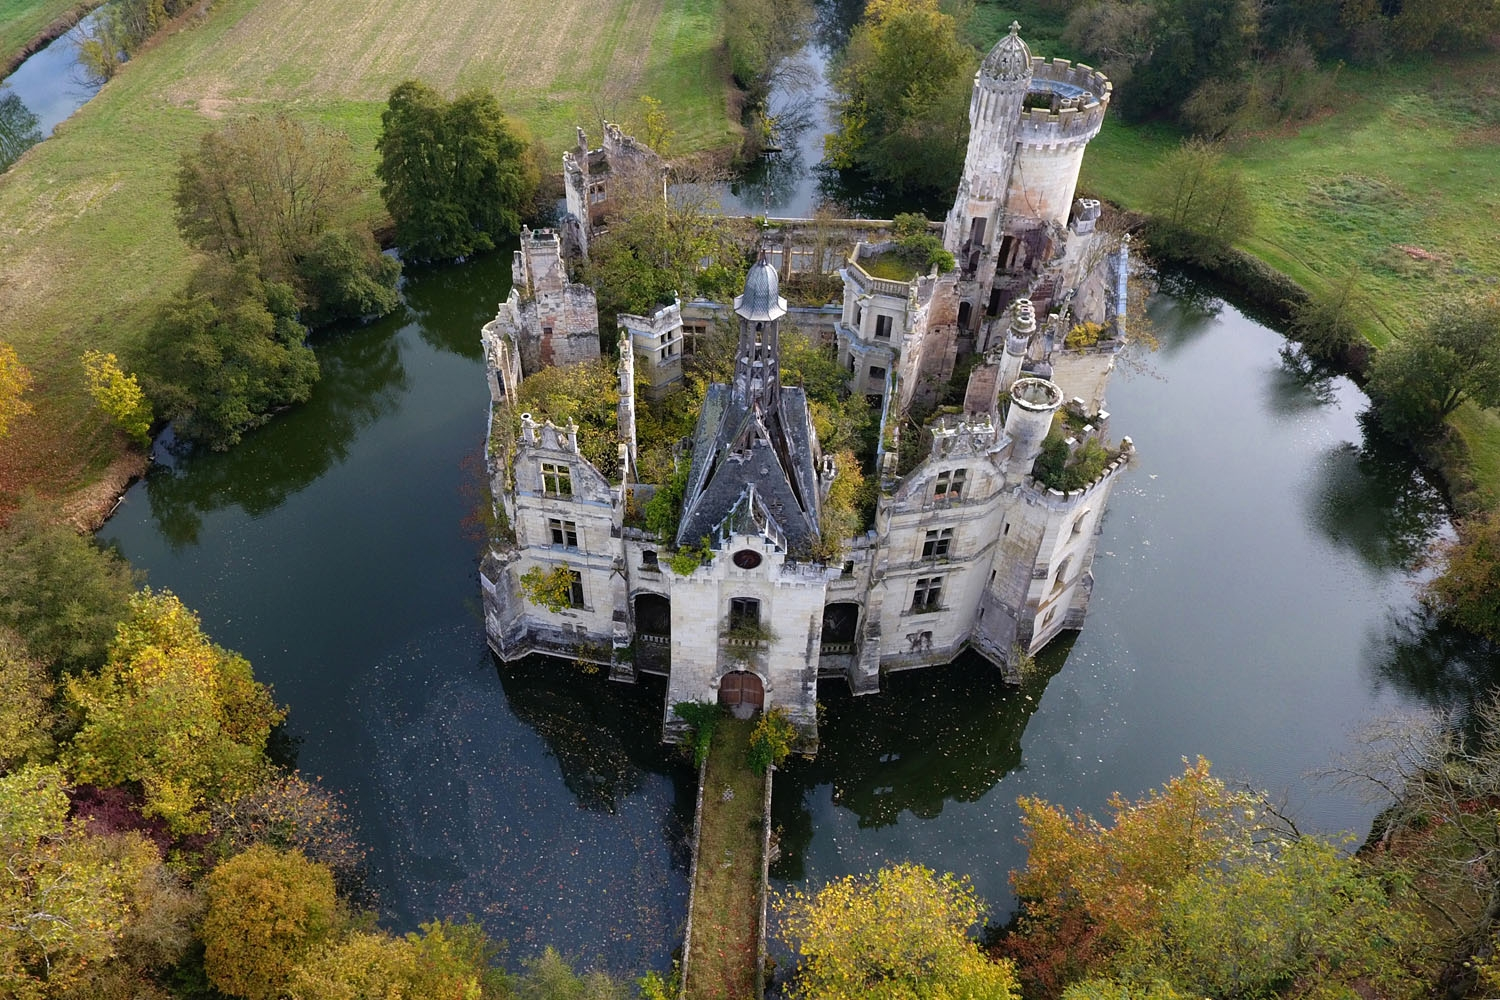 A picture taken on November 3, 2017 shows an aerial view of the ruined castle of La Mothe-Chandeniers, in Les Trois-Moutiers, central western France. Specialized in the rescue of old stones, the crowdfunding site Dartagnans.fr and the association Adopte u